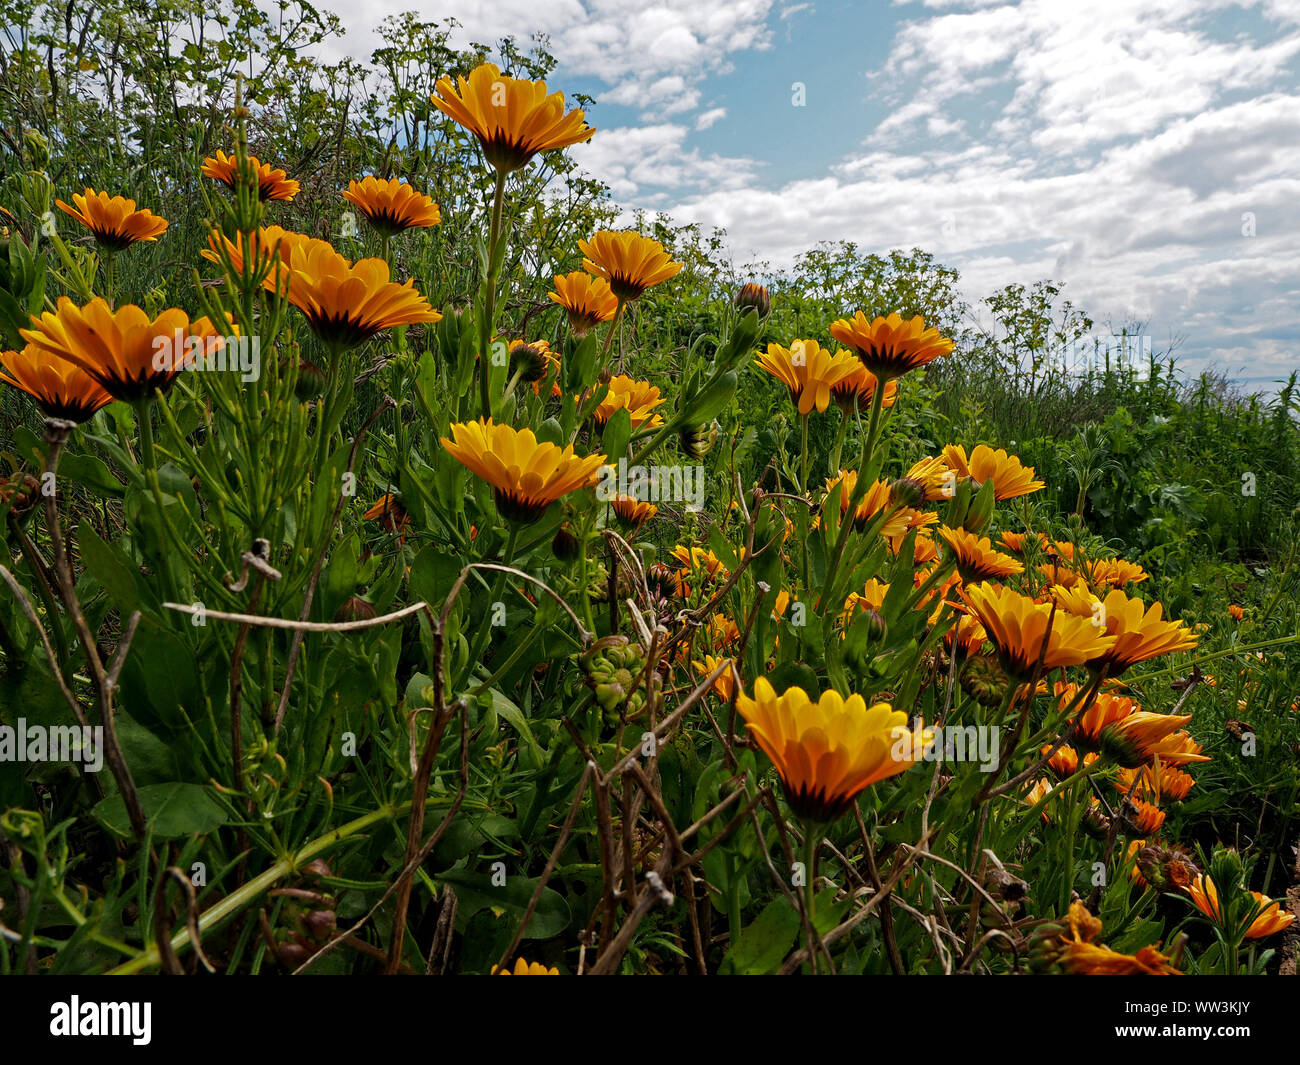 close-up view of a host of bright golden yellow flowers on grassy bank below dramatic sky near Pittenweem, East Neuk,Fife,Scotland,UK Stock Photo